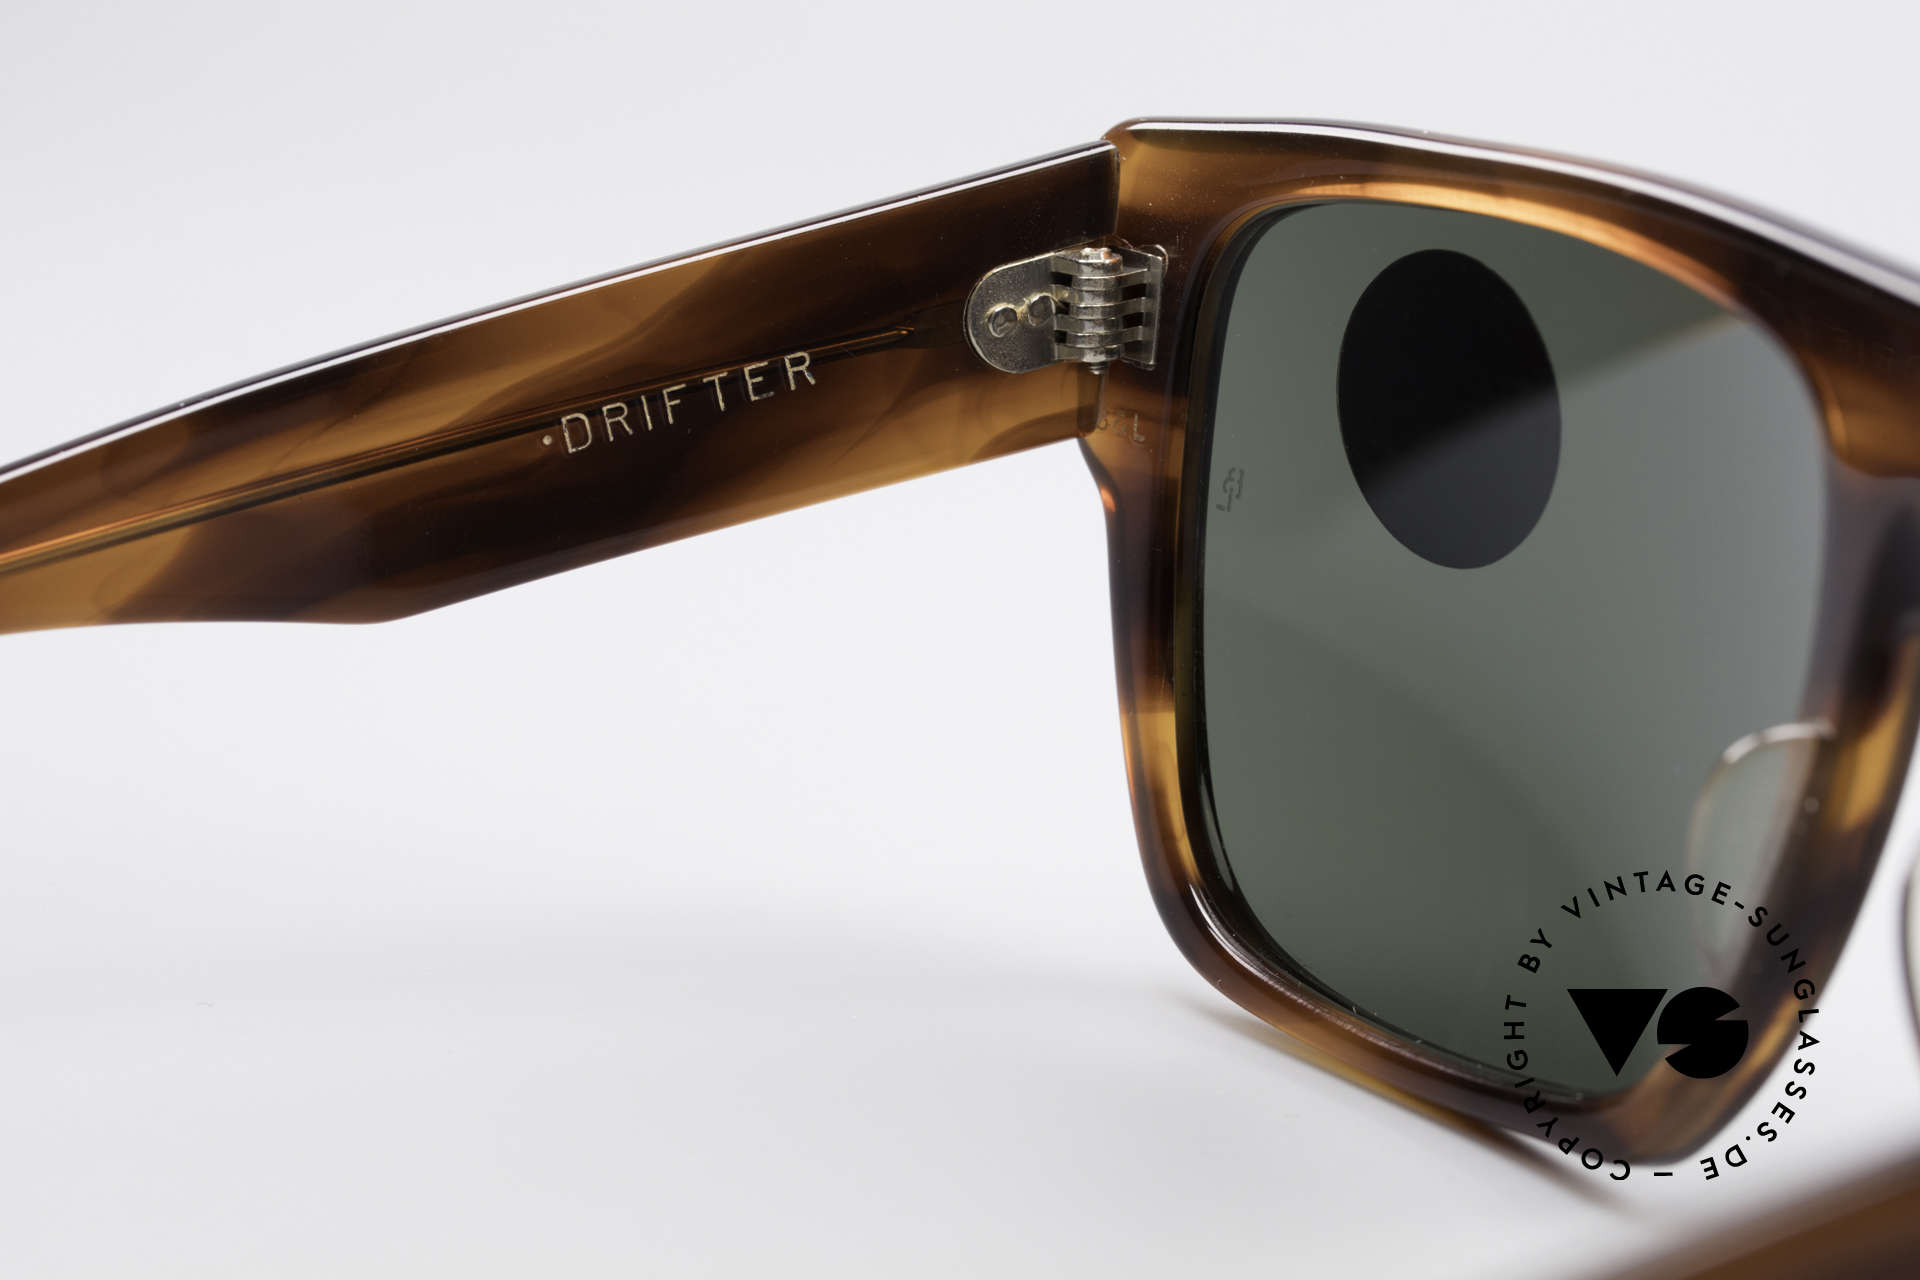 Ray Ban Drifter Old 80's USA B&L Sunglasses, unworn (like all our rare vintage USA Ray-Bans), Made for Men